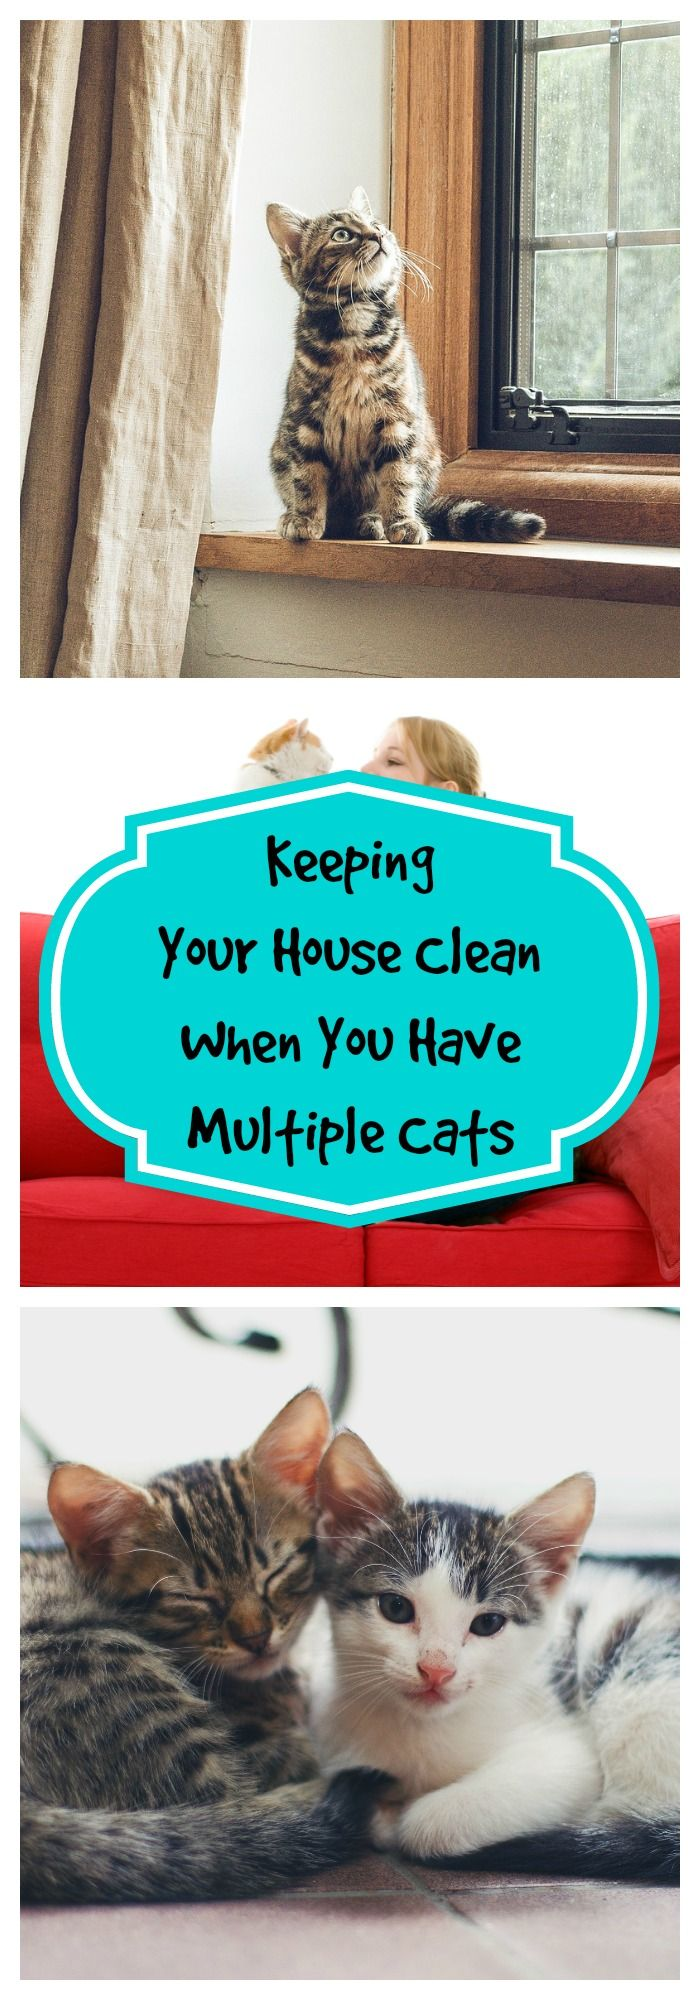 Keeping Your House Clean When You Have Multiple Cats